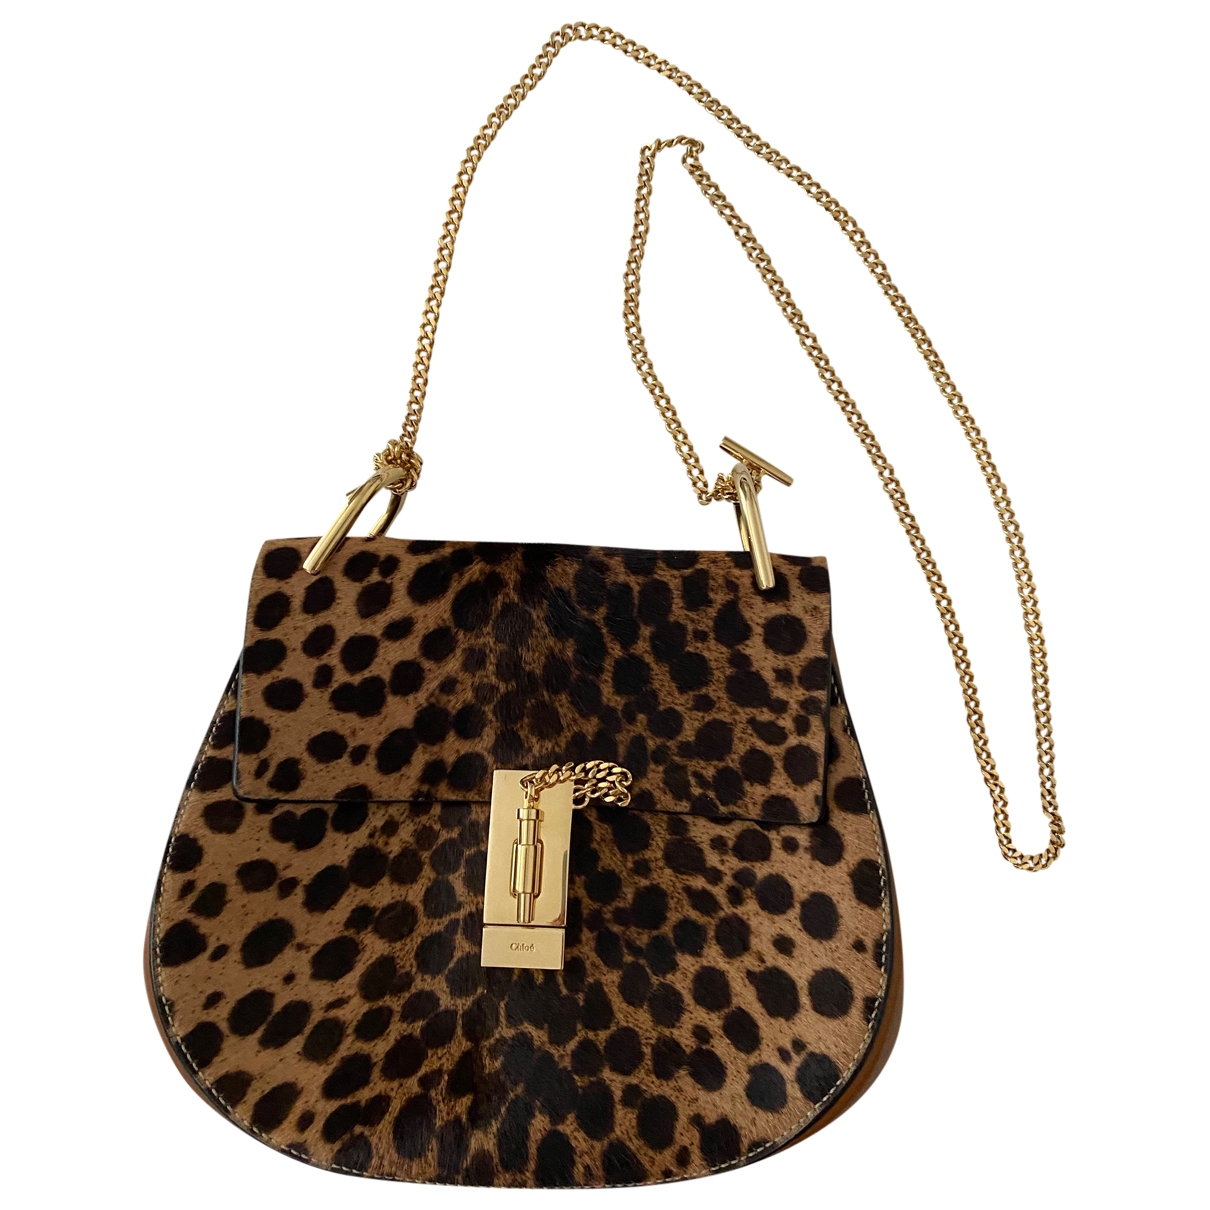 Chloé Drew Brown Pony-style calfskin handbag for Women \N